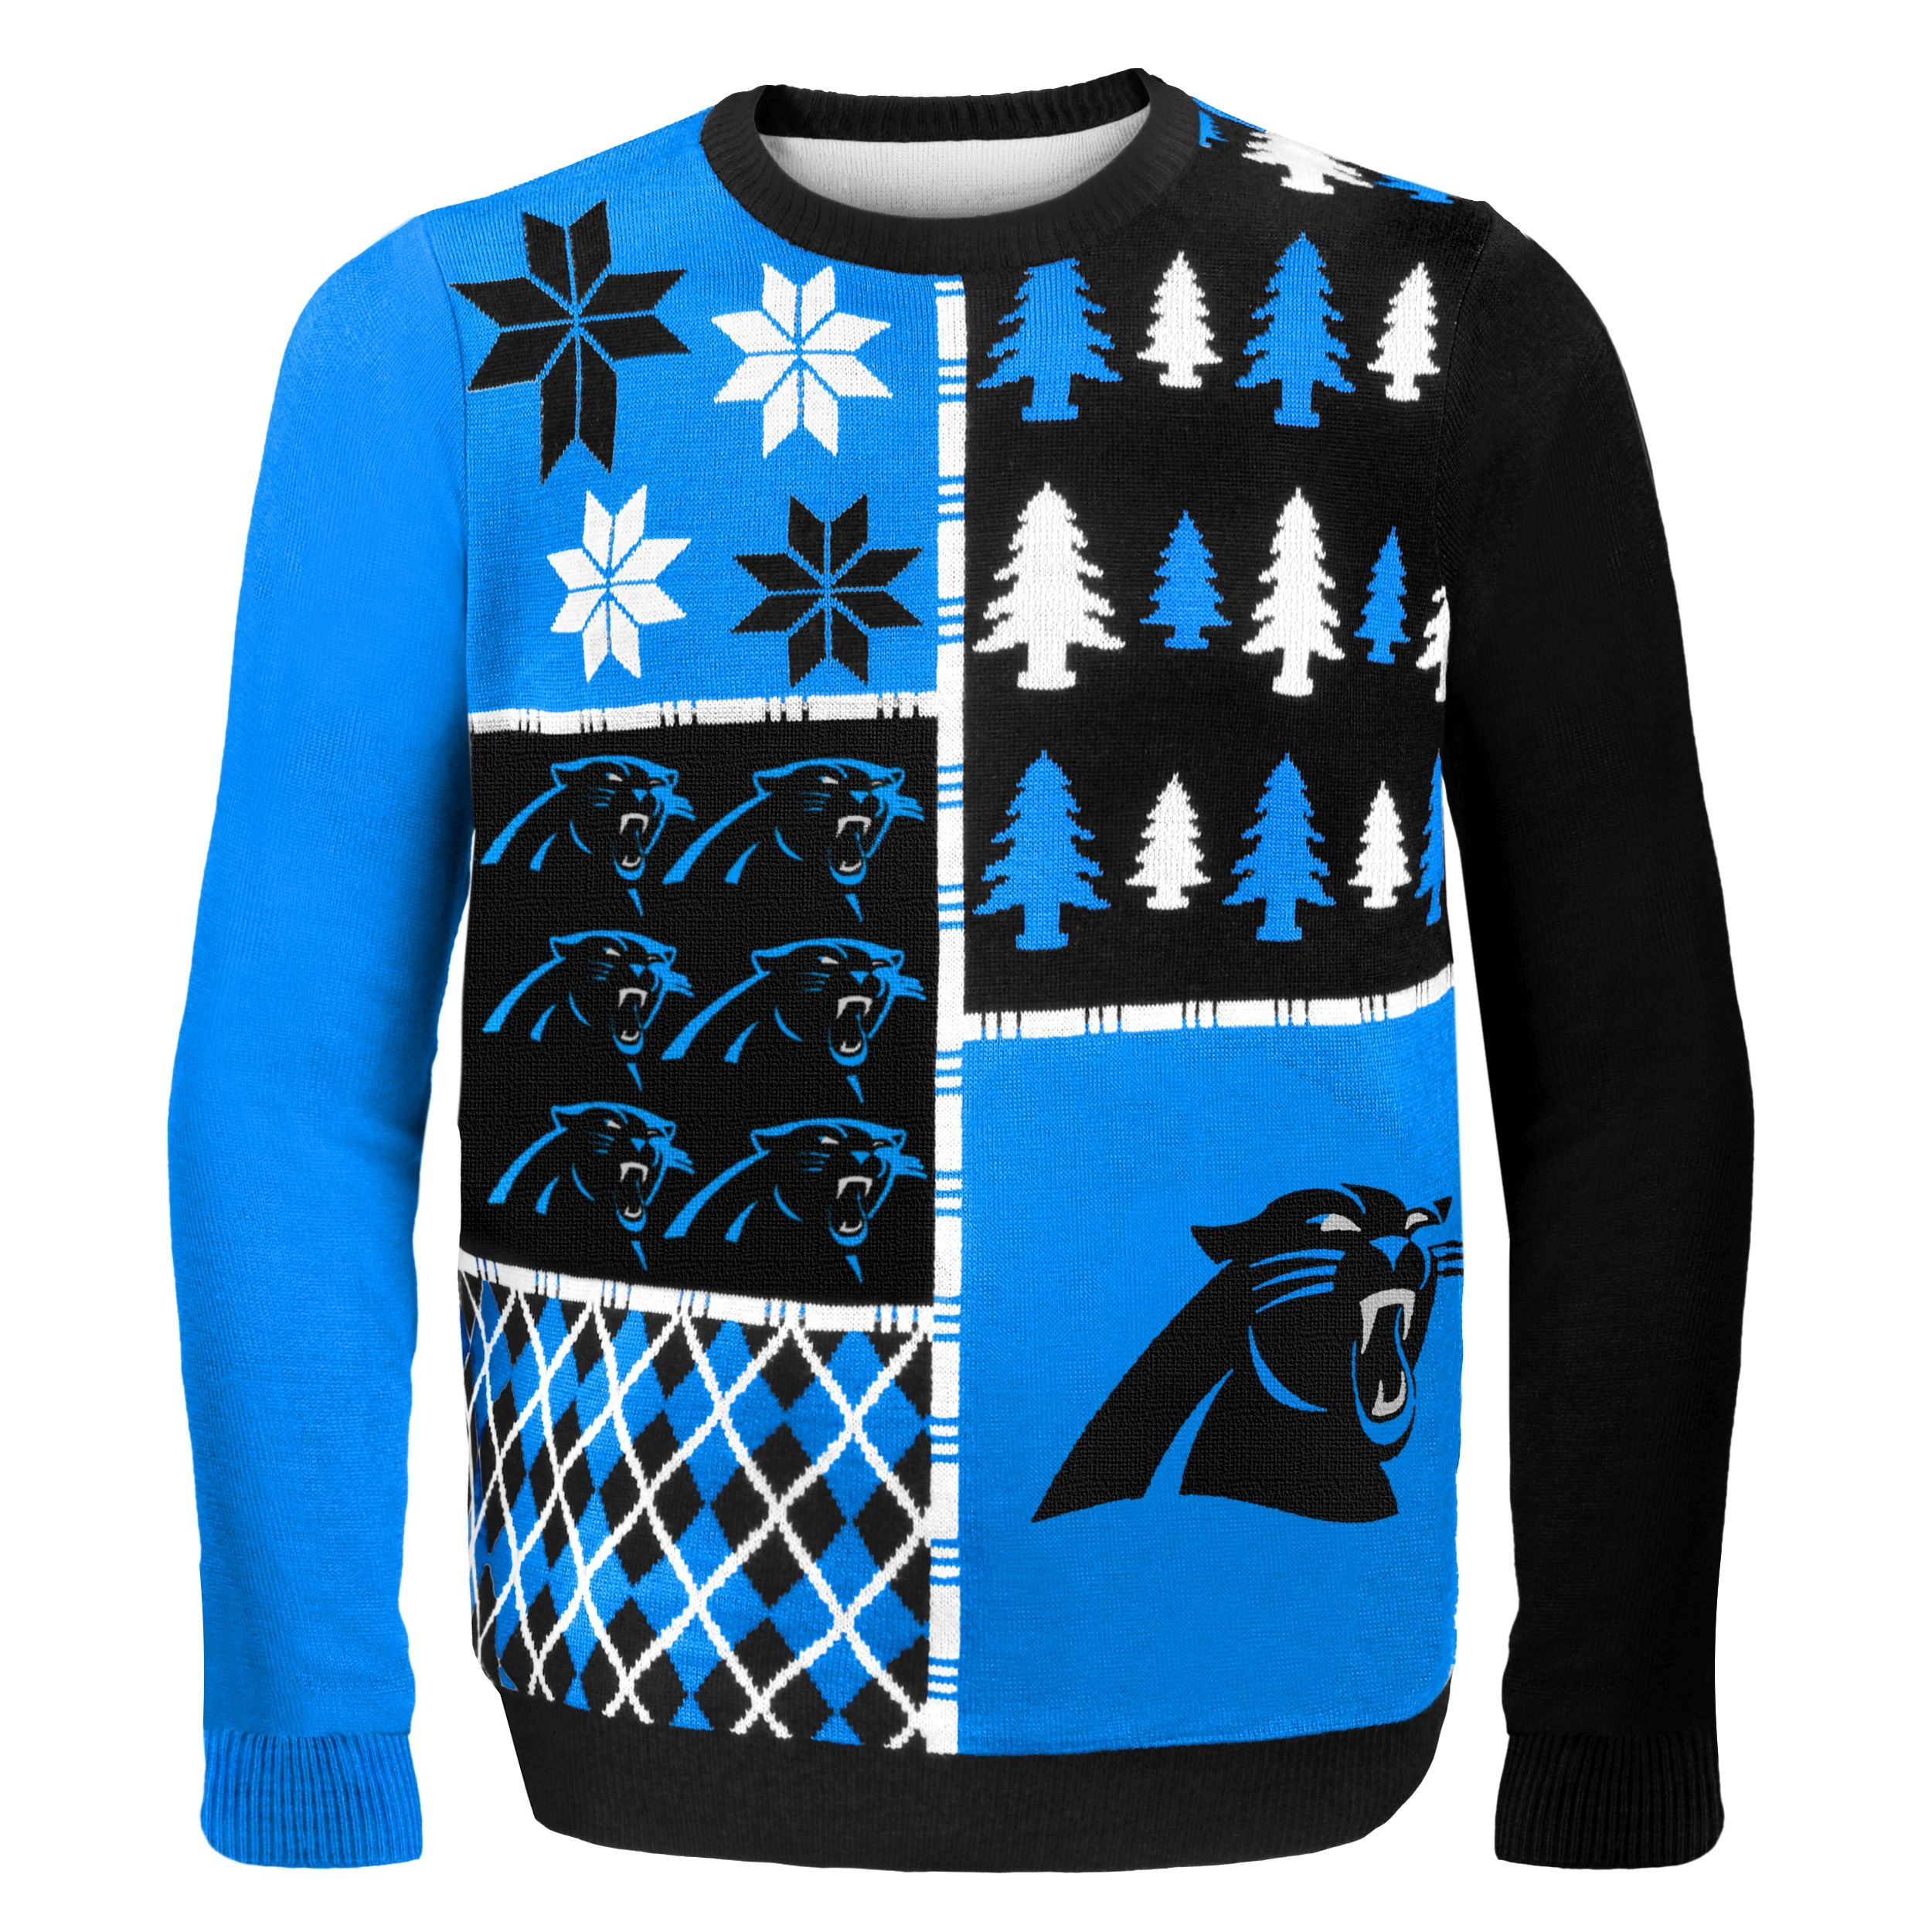 Panthers Sweater My Babies Pinterest Panthers